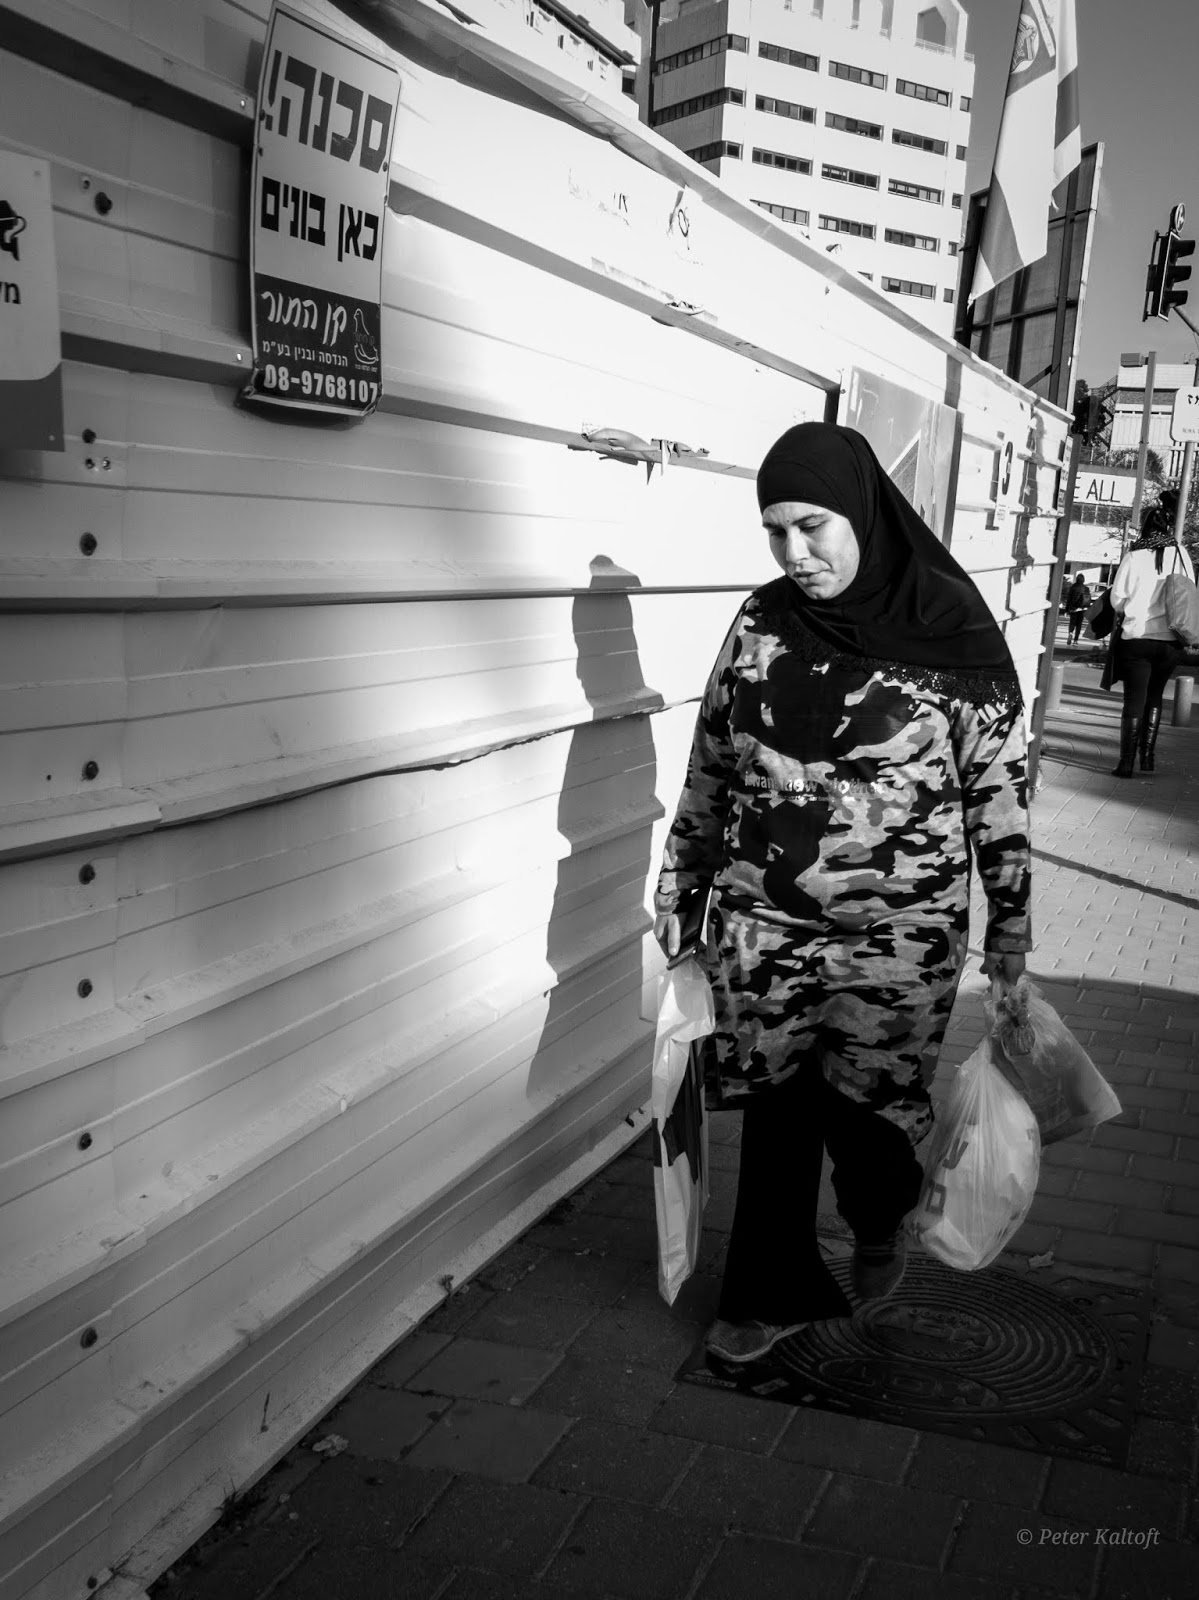 A Muslim woman passes a construction site sign, warning of danger